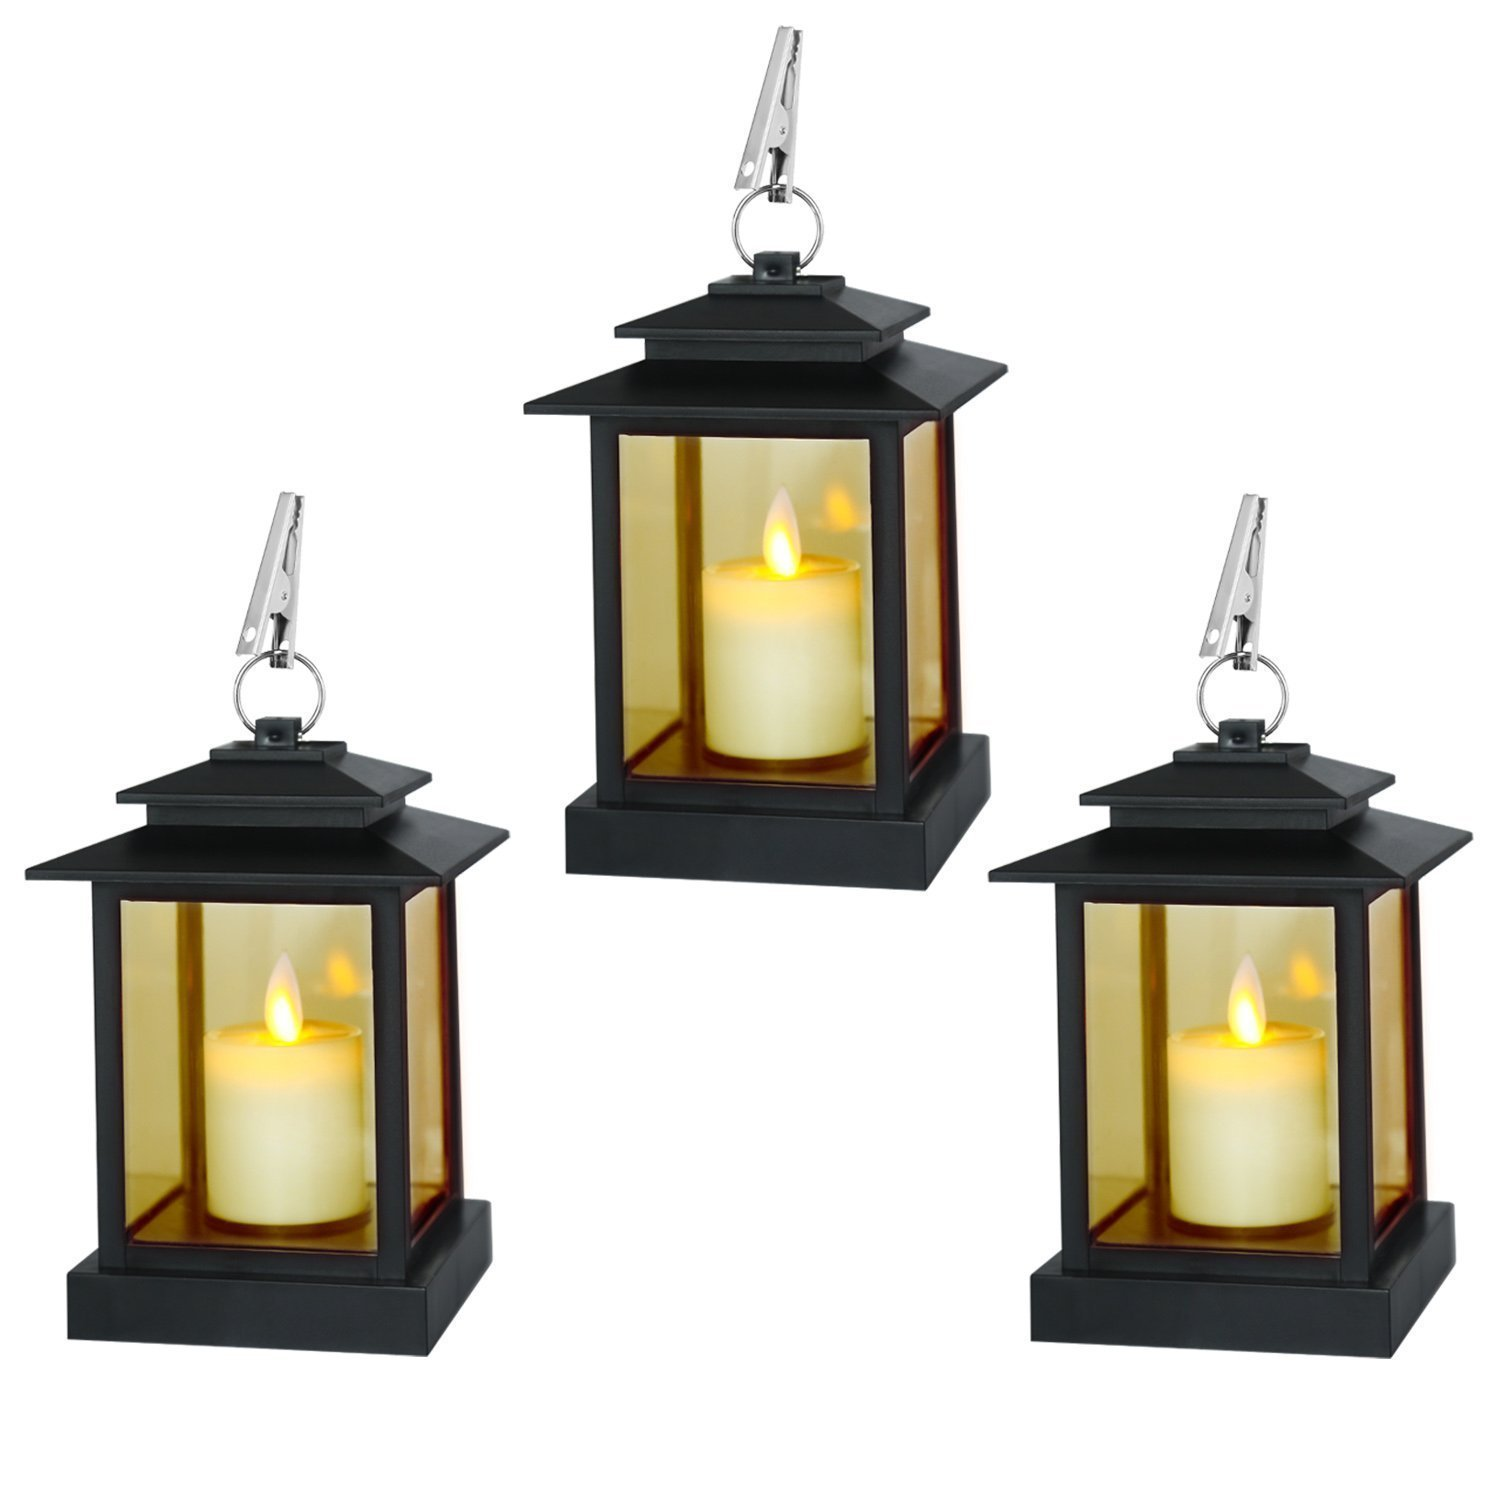 Decorative Candle Lanterns, Set of 3 Indoor and Outdoor Black Lanterns with LED Pillar Moving Wick Flameless Candles, 5 Hours Timer Lingyun RY-03504